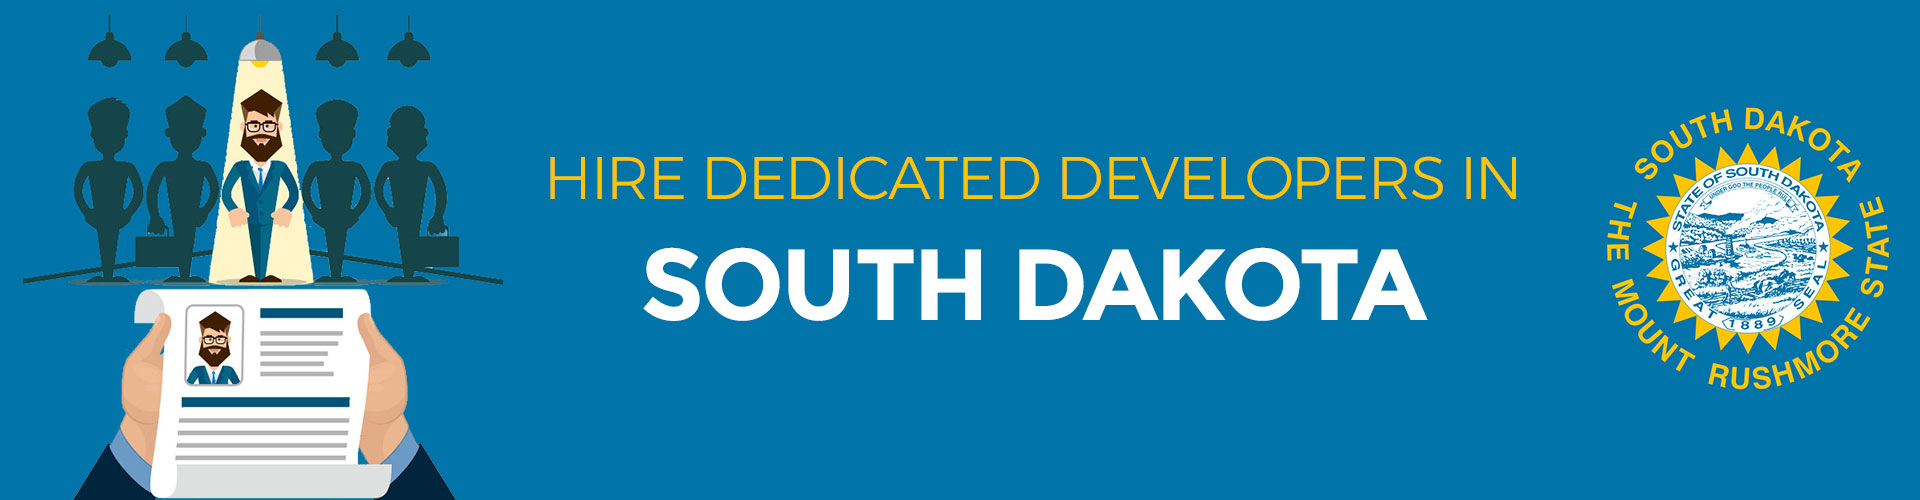 mobile app development company south dakota